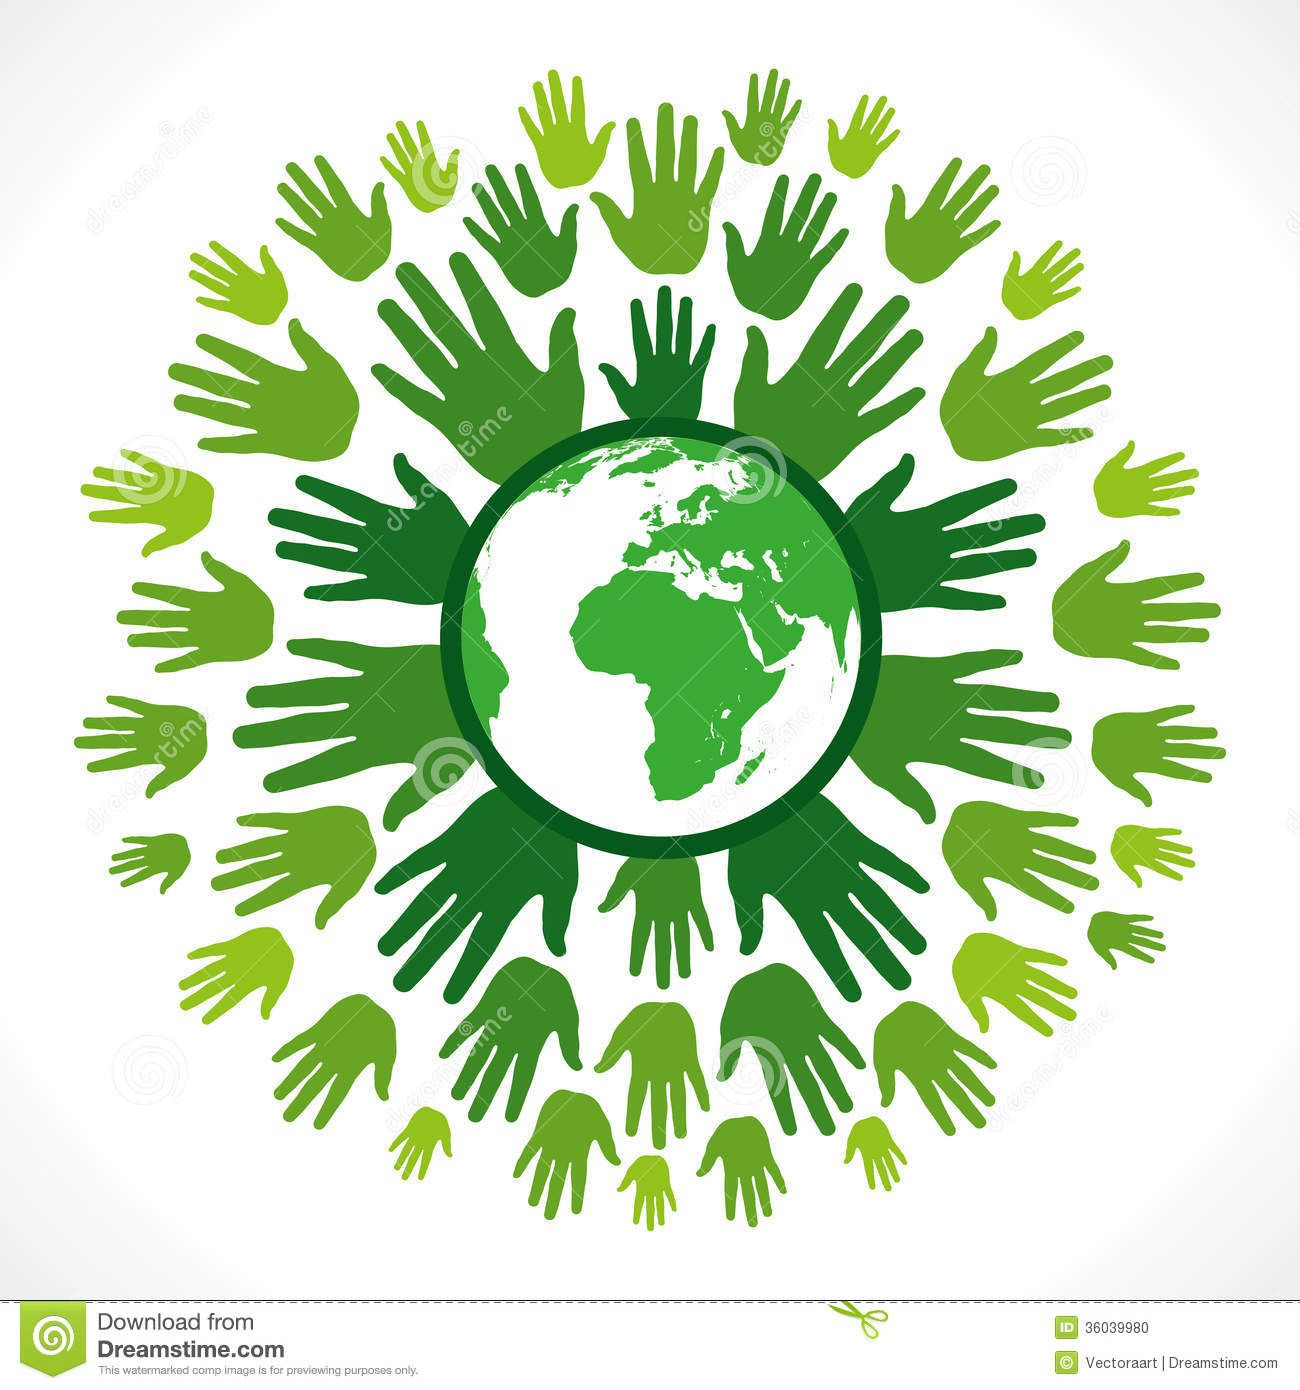 Save earth conceptual recycling symbol stock photos images save earth conceptual recycling symbol stock photos images biocorpaavc Gallery